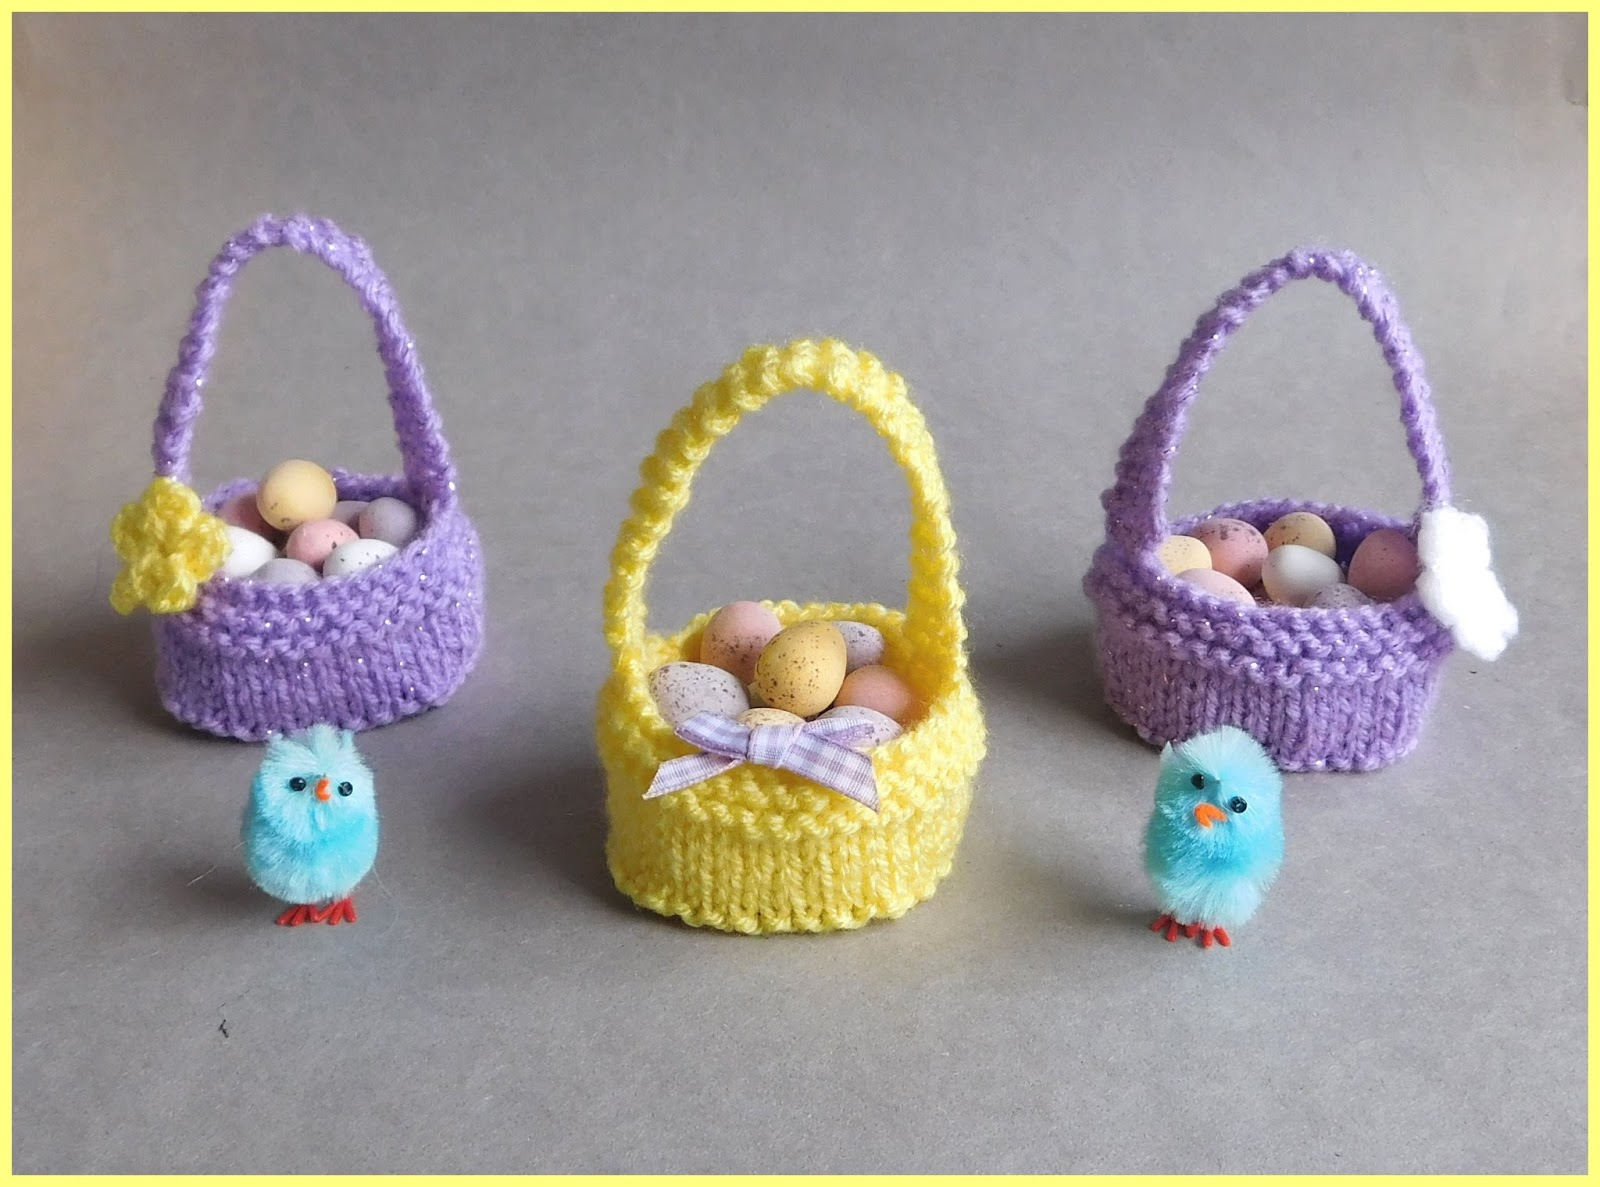 Letter Knitting Patterns : mariannas lazy daisy days: Sweet Little Easter Baskets